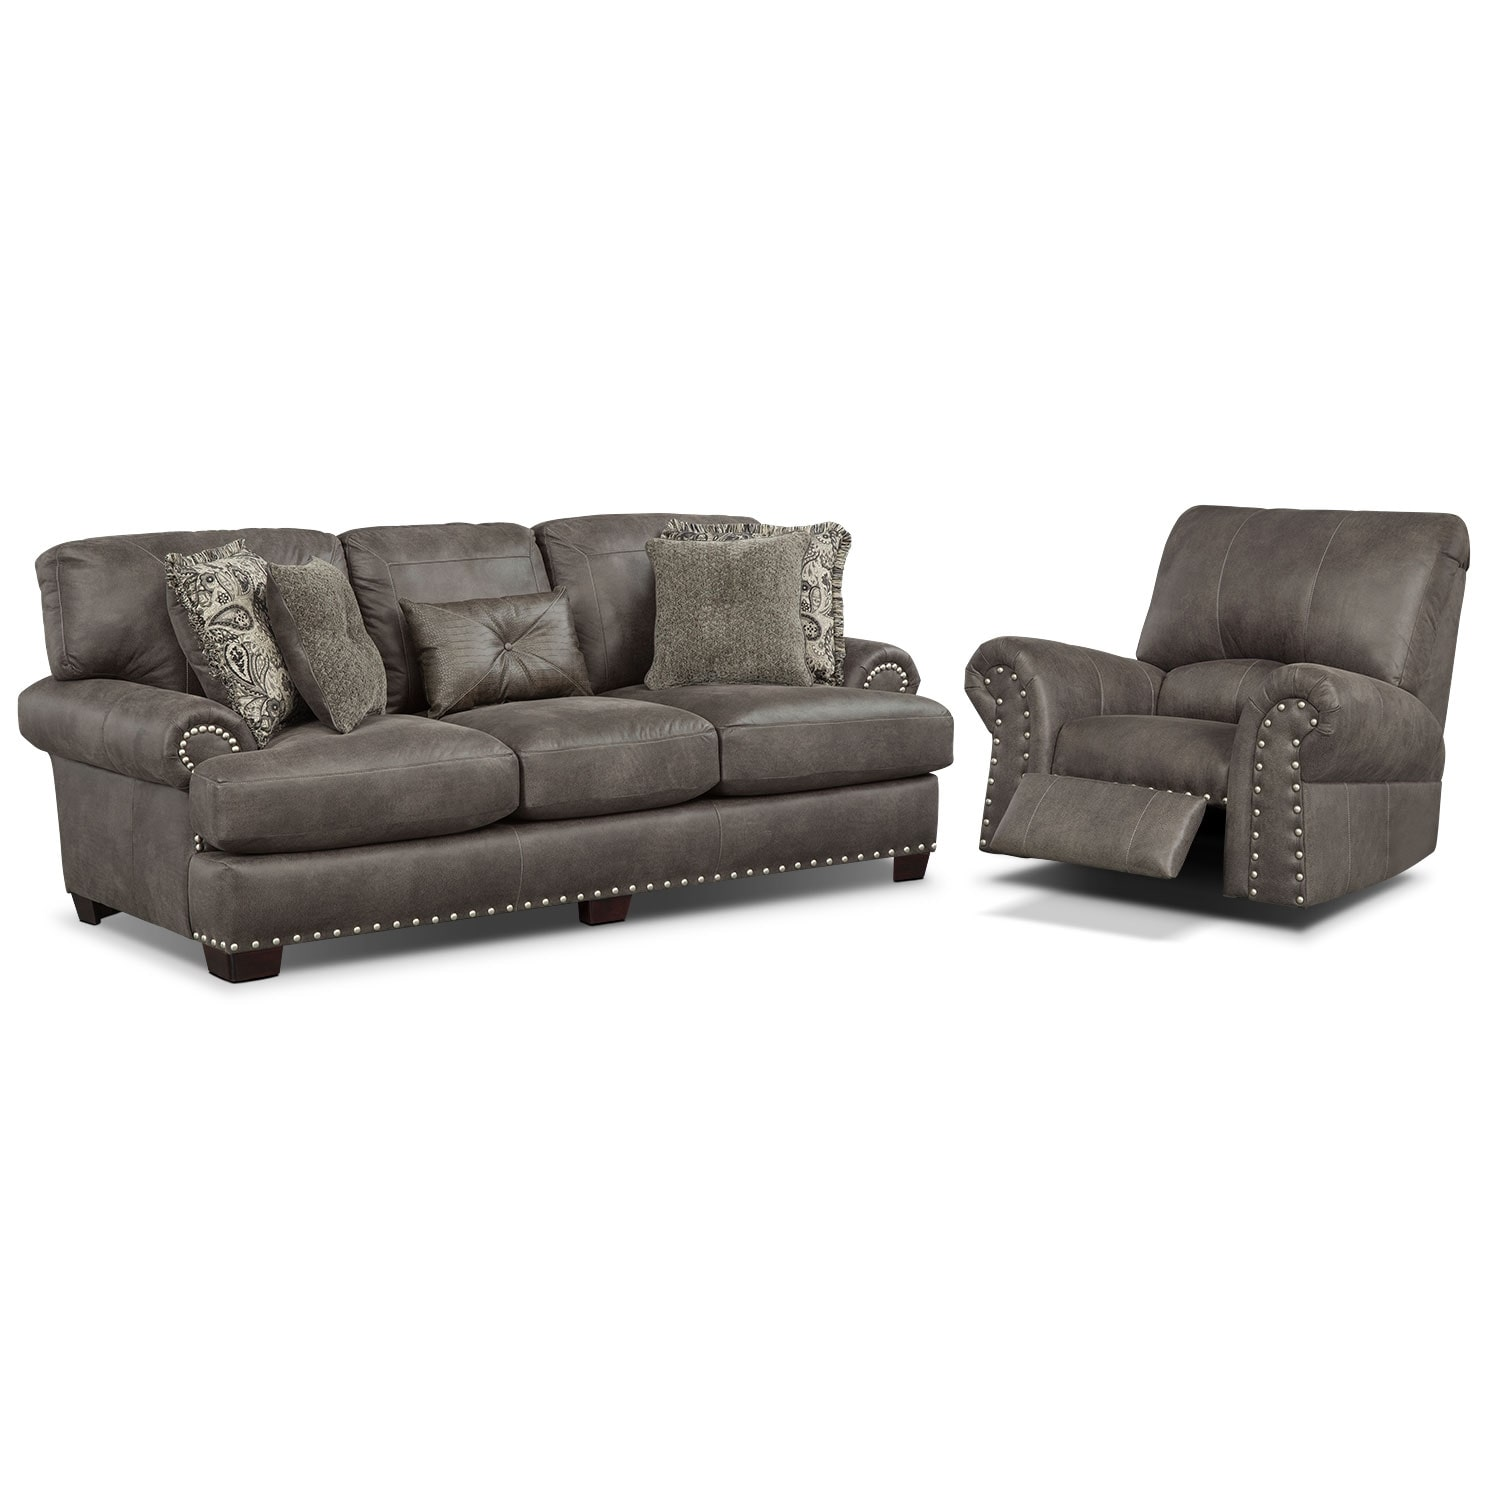 Burlington Sofa and Recliner Set - Steel